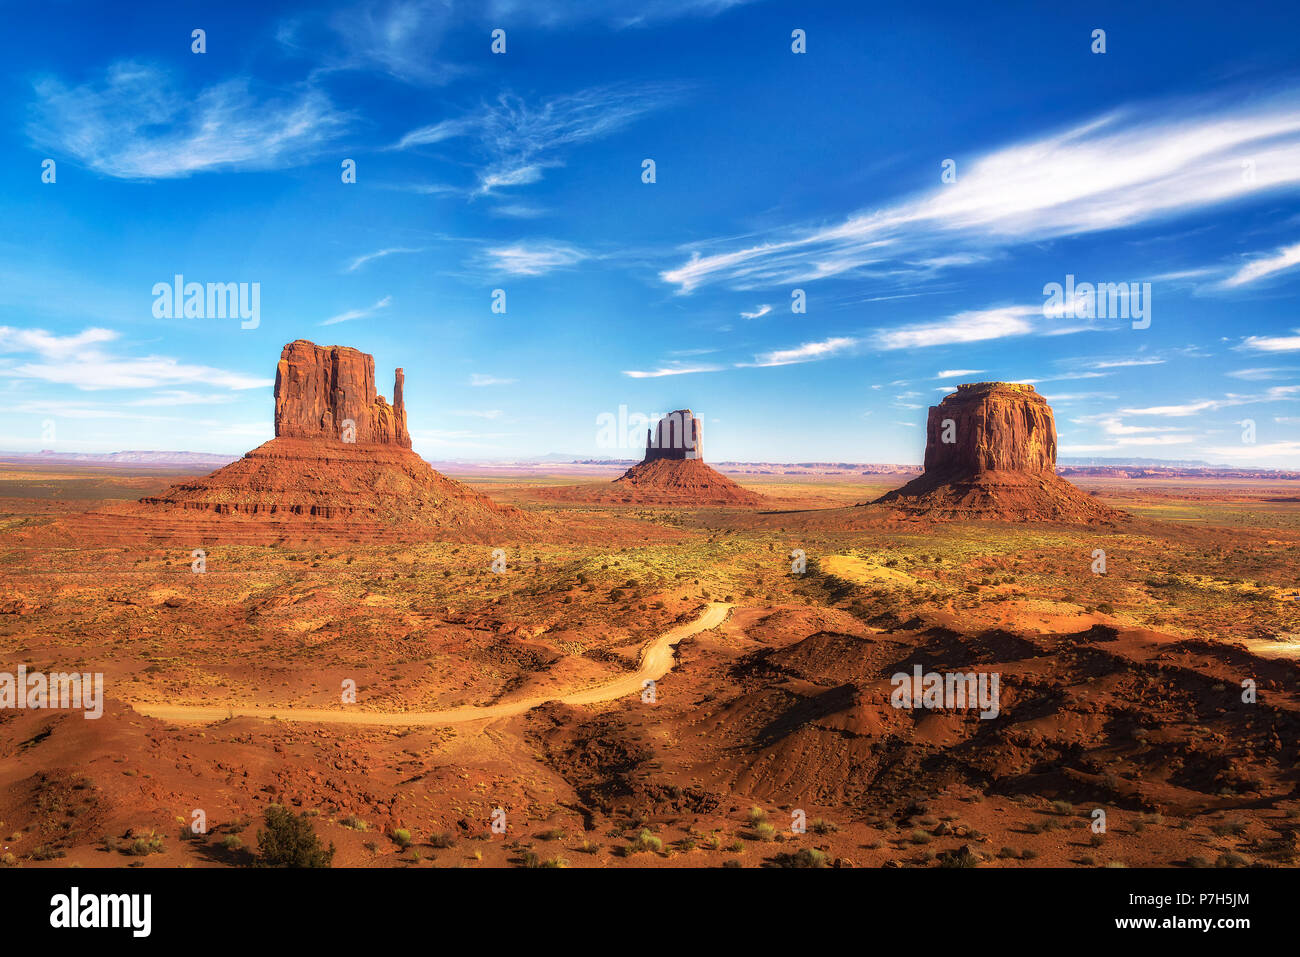 Alamy amp; Stock Reservation - Images Blue Hills Photos